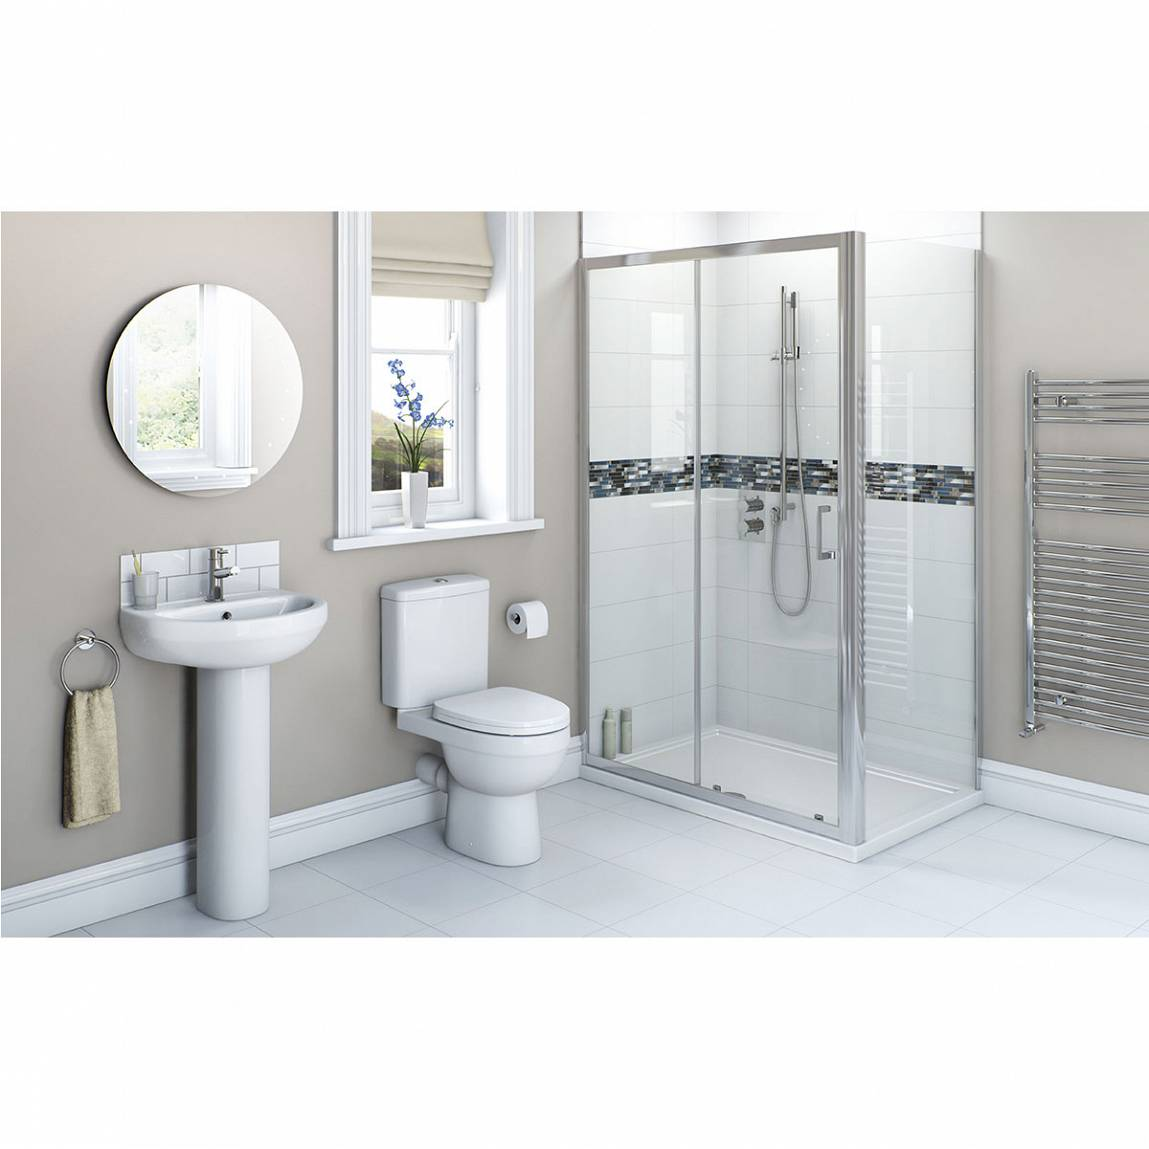 Image of Energy Bathroom Suite with Sliding Enclosure 1200 x 760